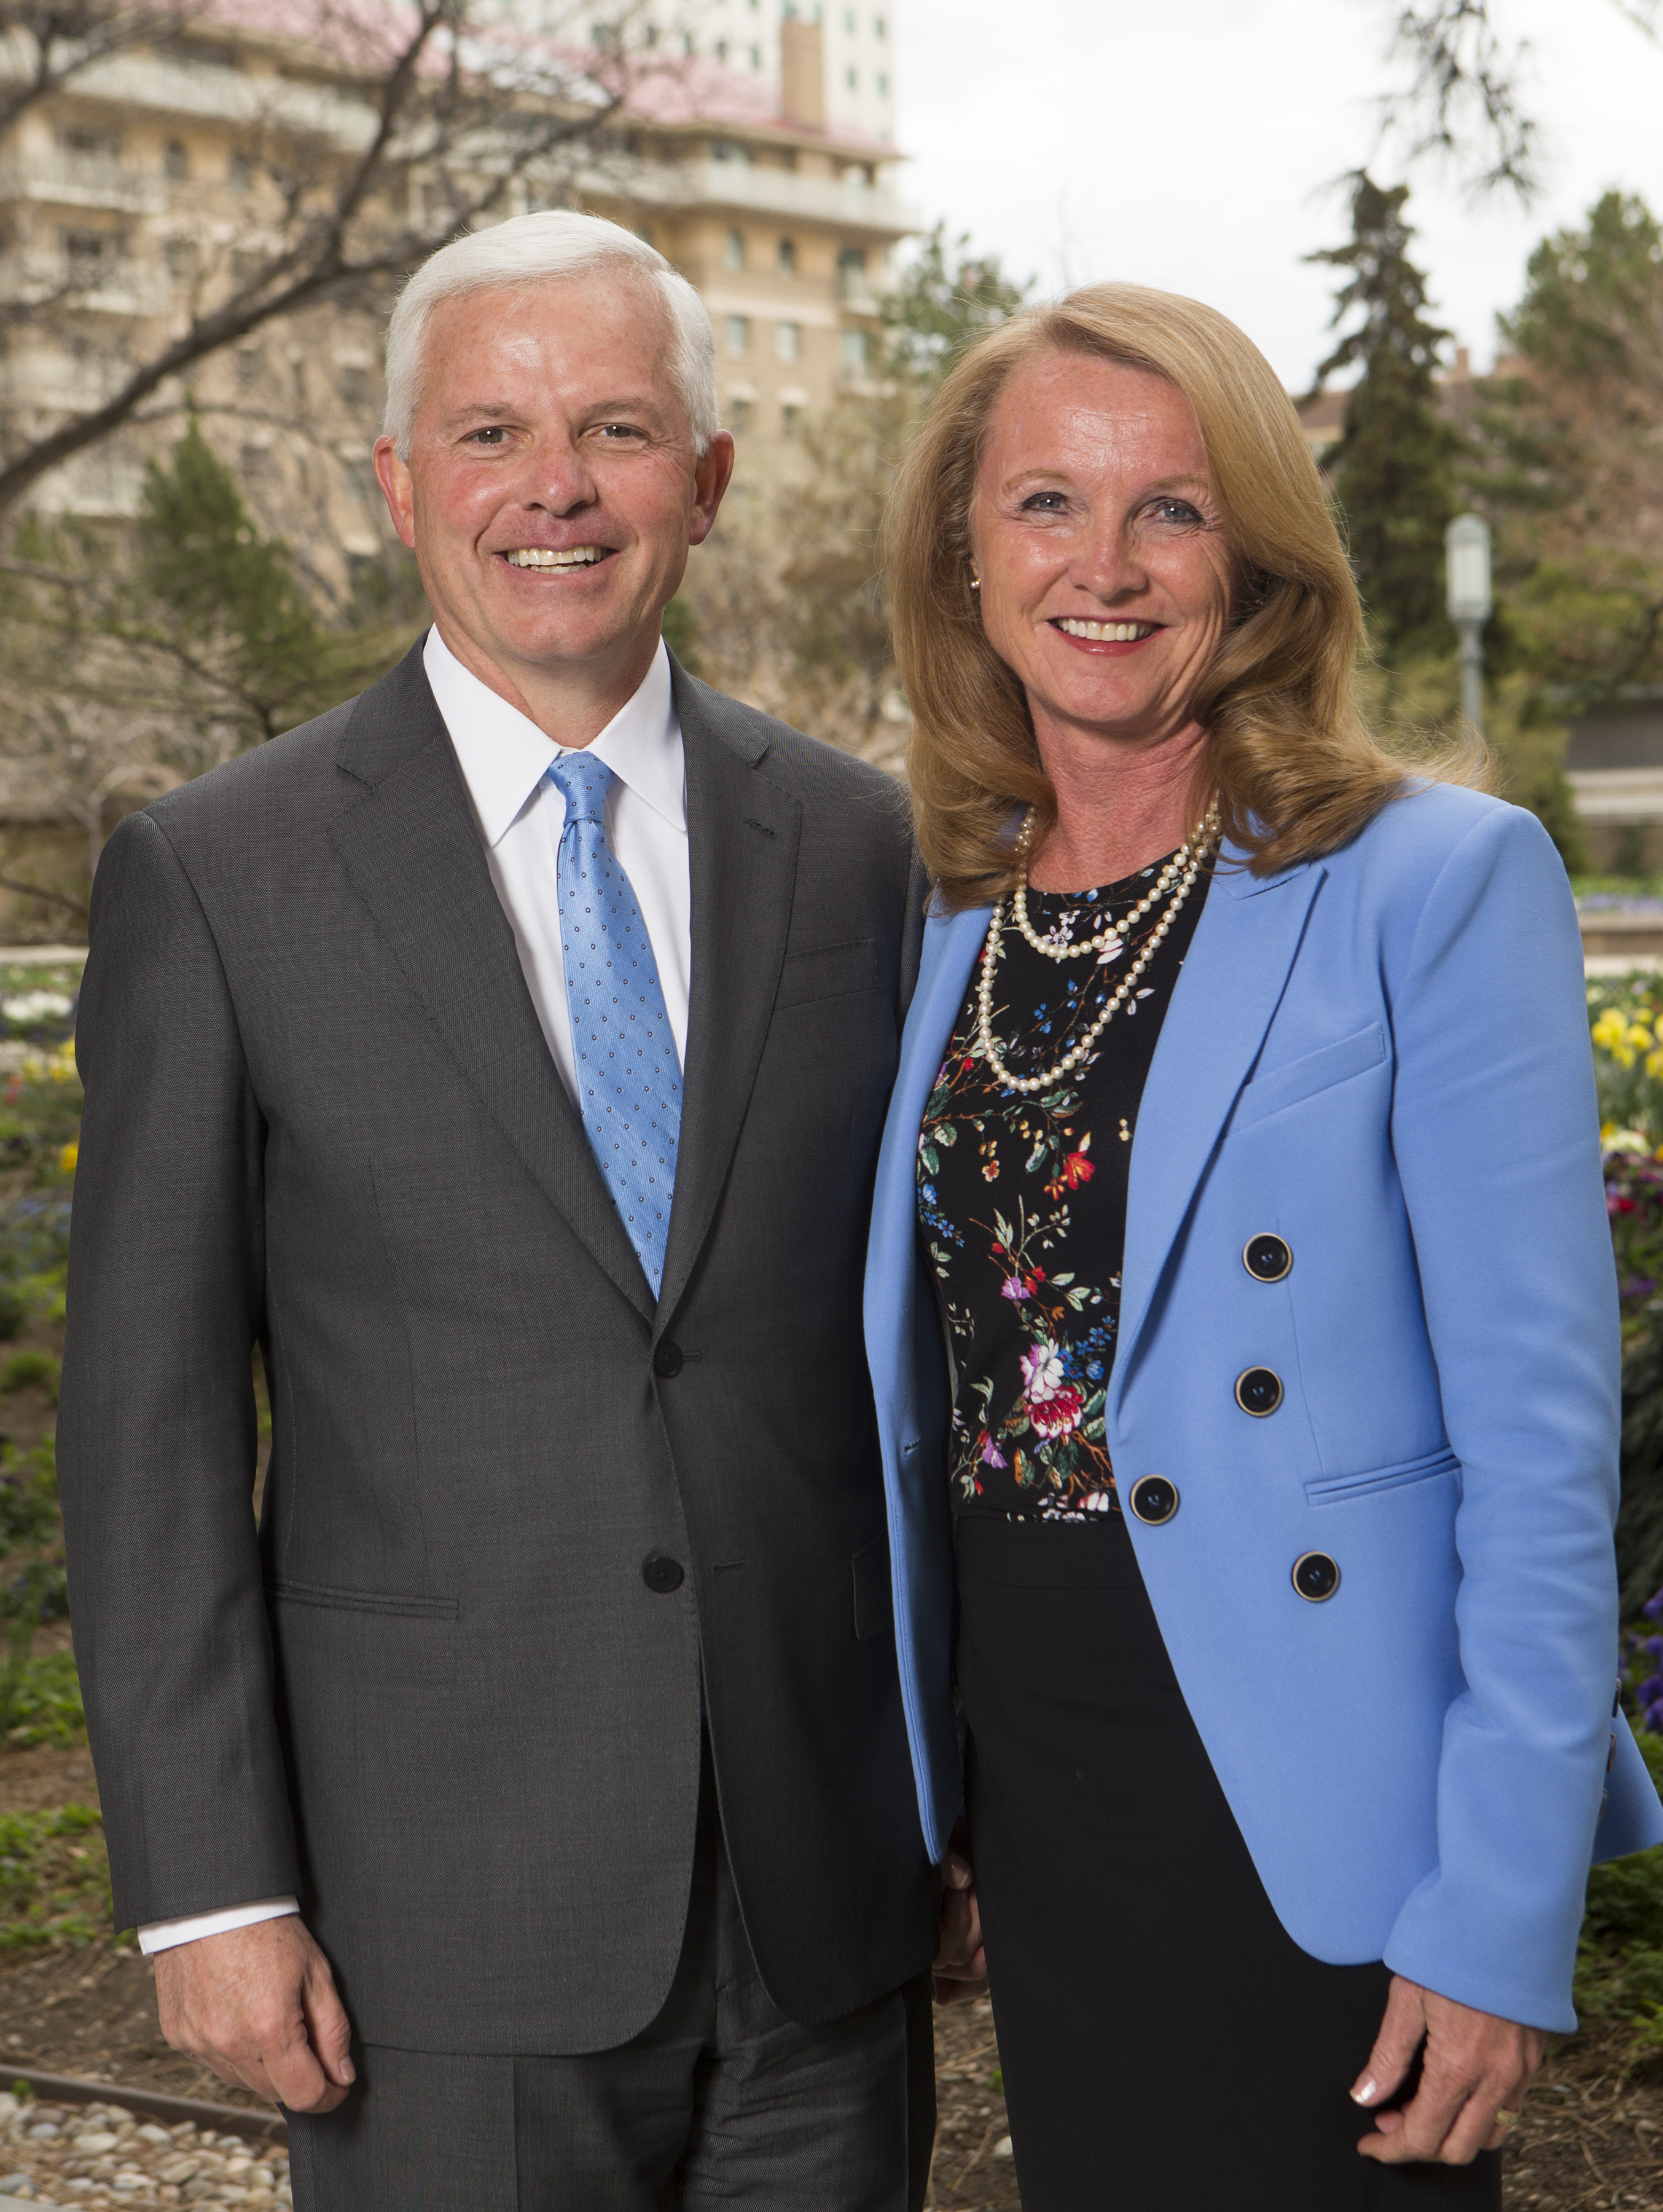 Elder Matthew L. Carpenter, General Authority Seventy, and his wife, Sister Shelly B. Carpenter, in Salt Lake City on Monday, April 2, 2018.